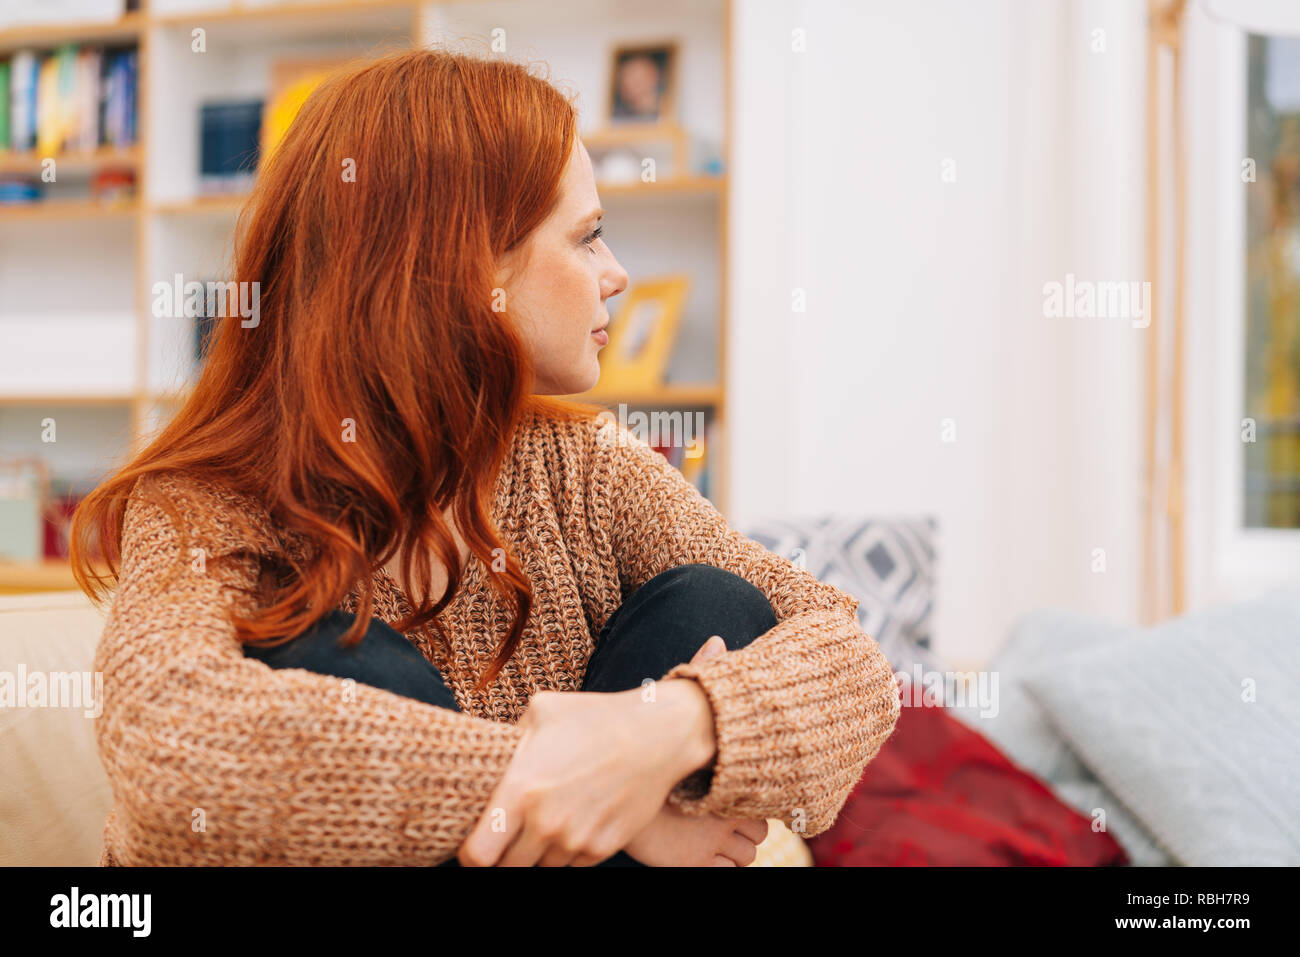 Young redhead woman looking away to stare out of a window as she clasps her knees while sitting on a comfy sofa at home - Stock Image